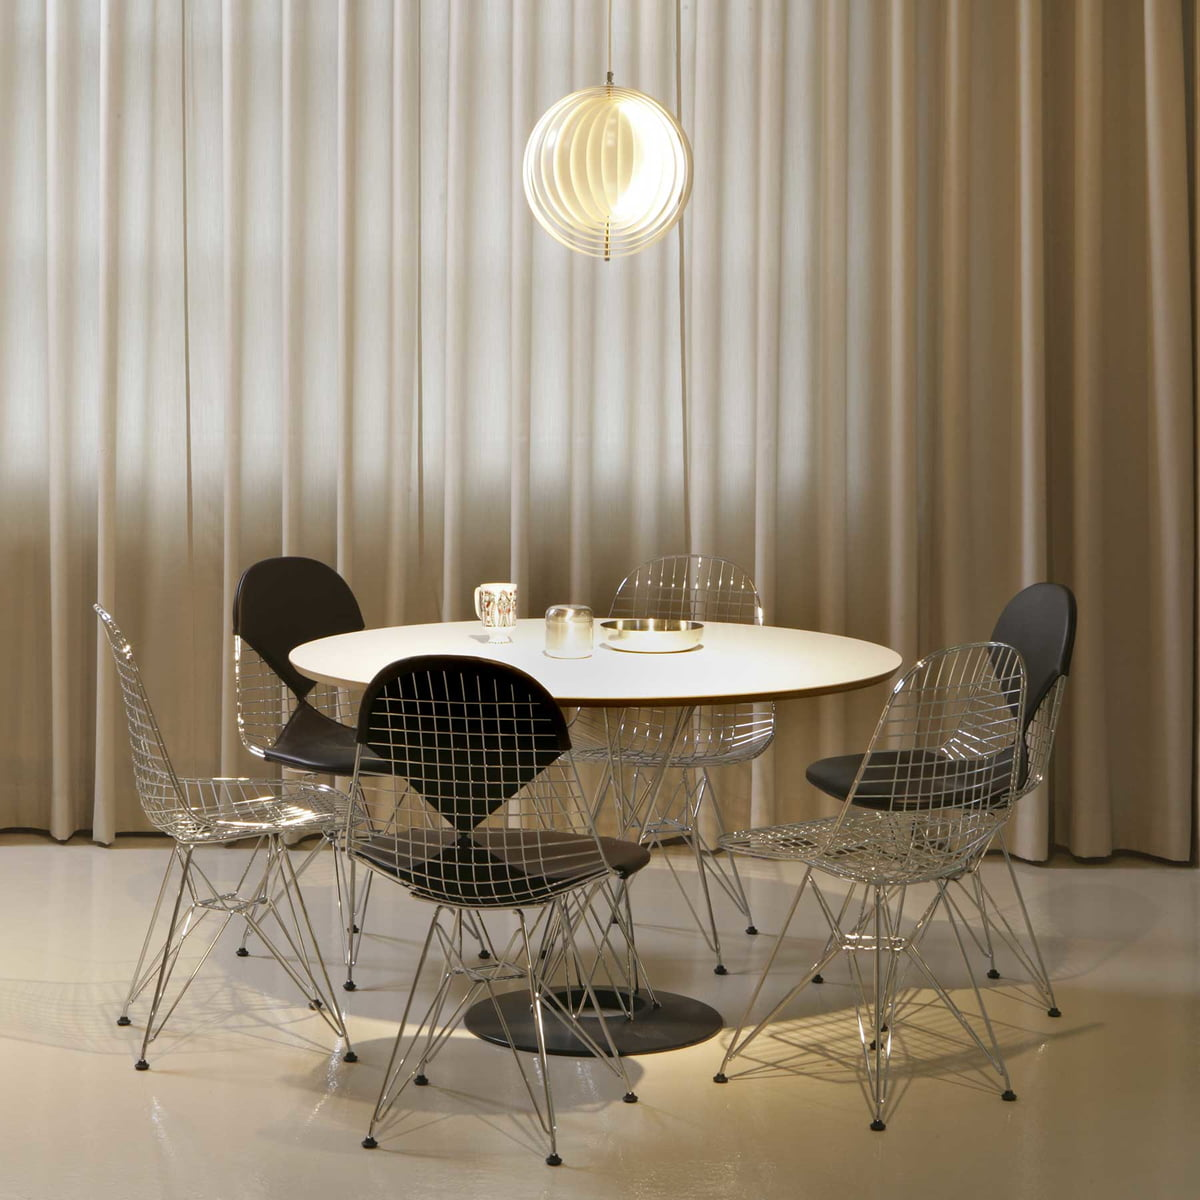 wire chair dkr 2 by vitra online